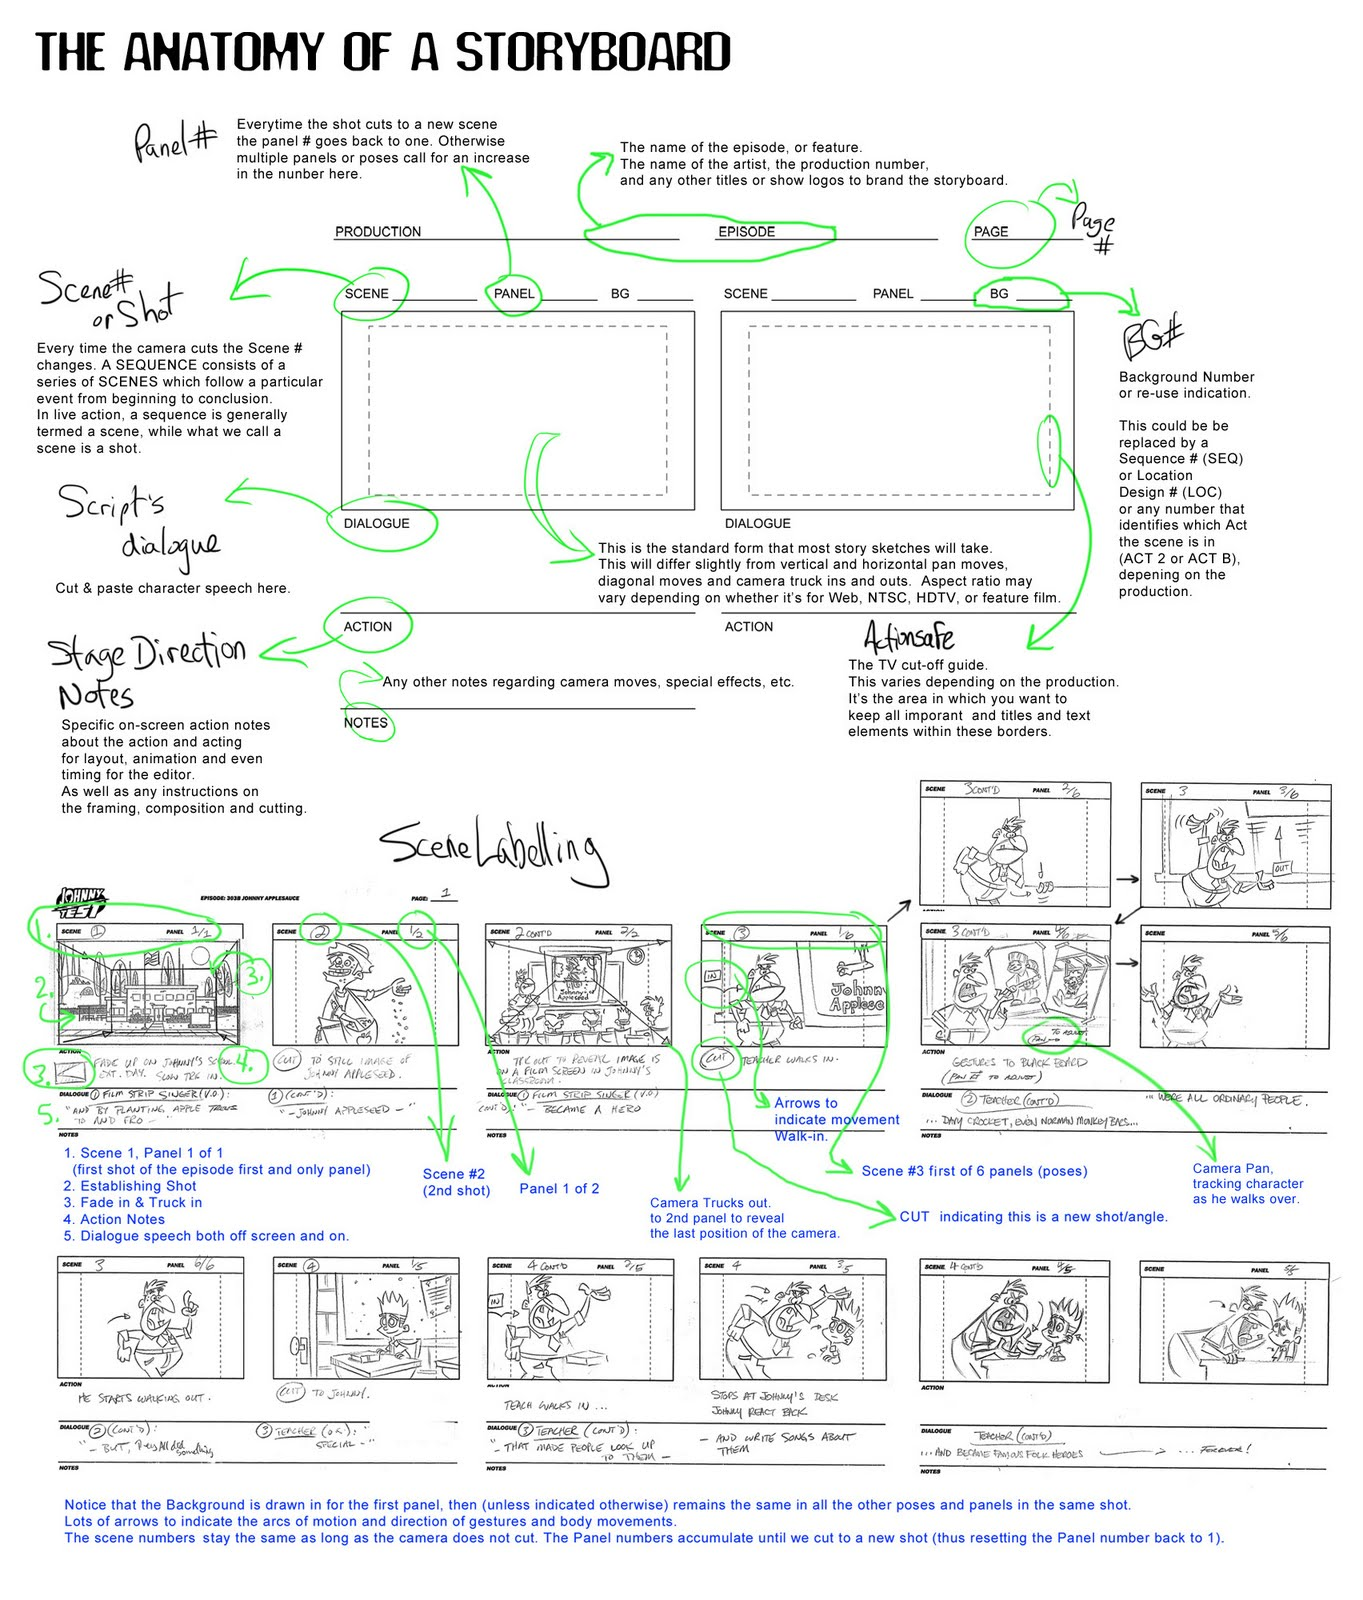 Flooby Nooby: The Anatomy of a Storyboard